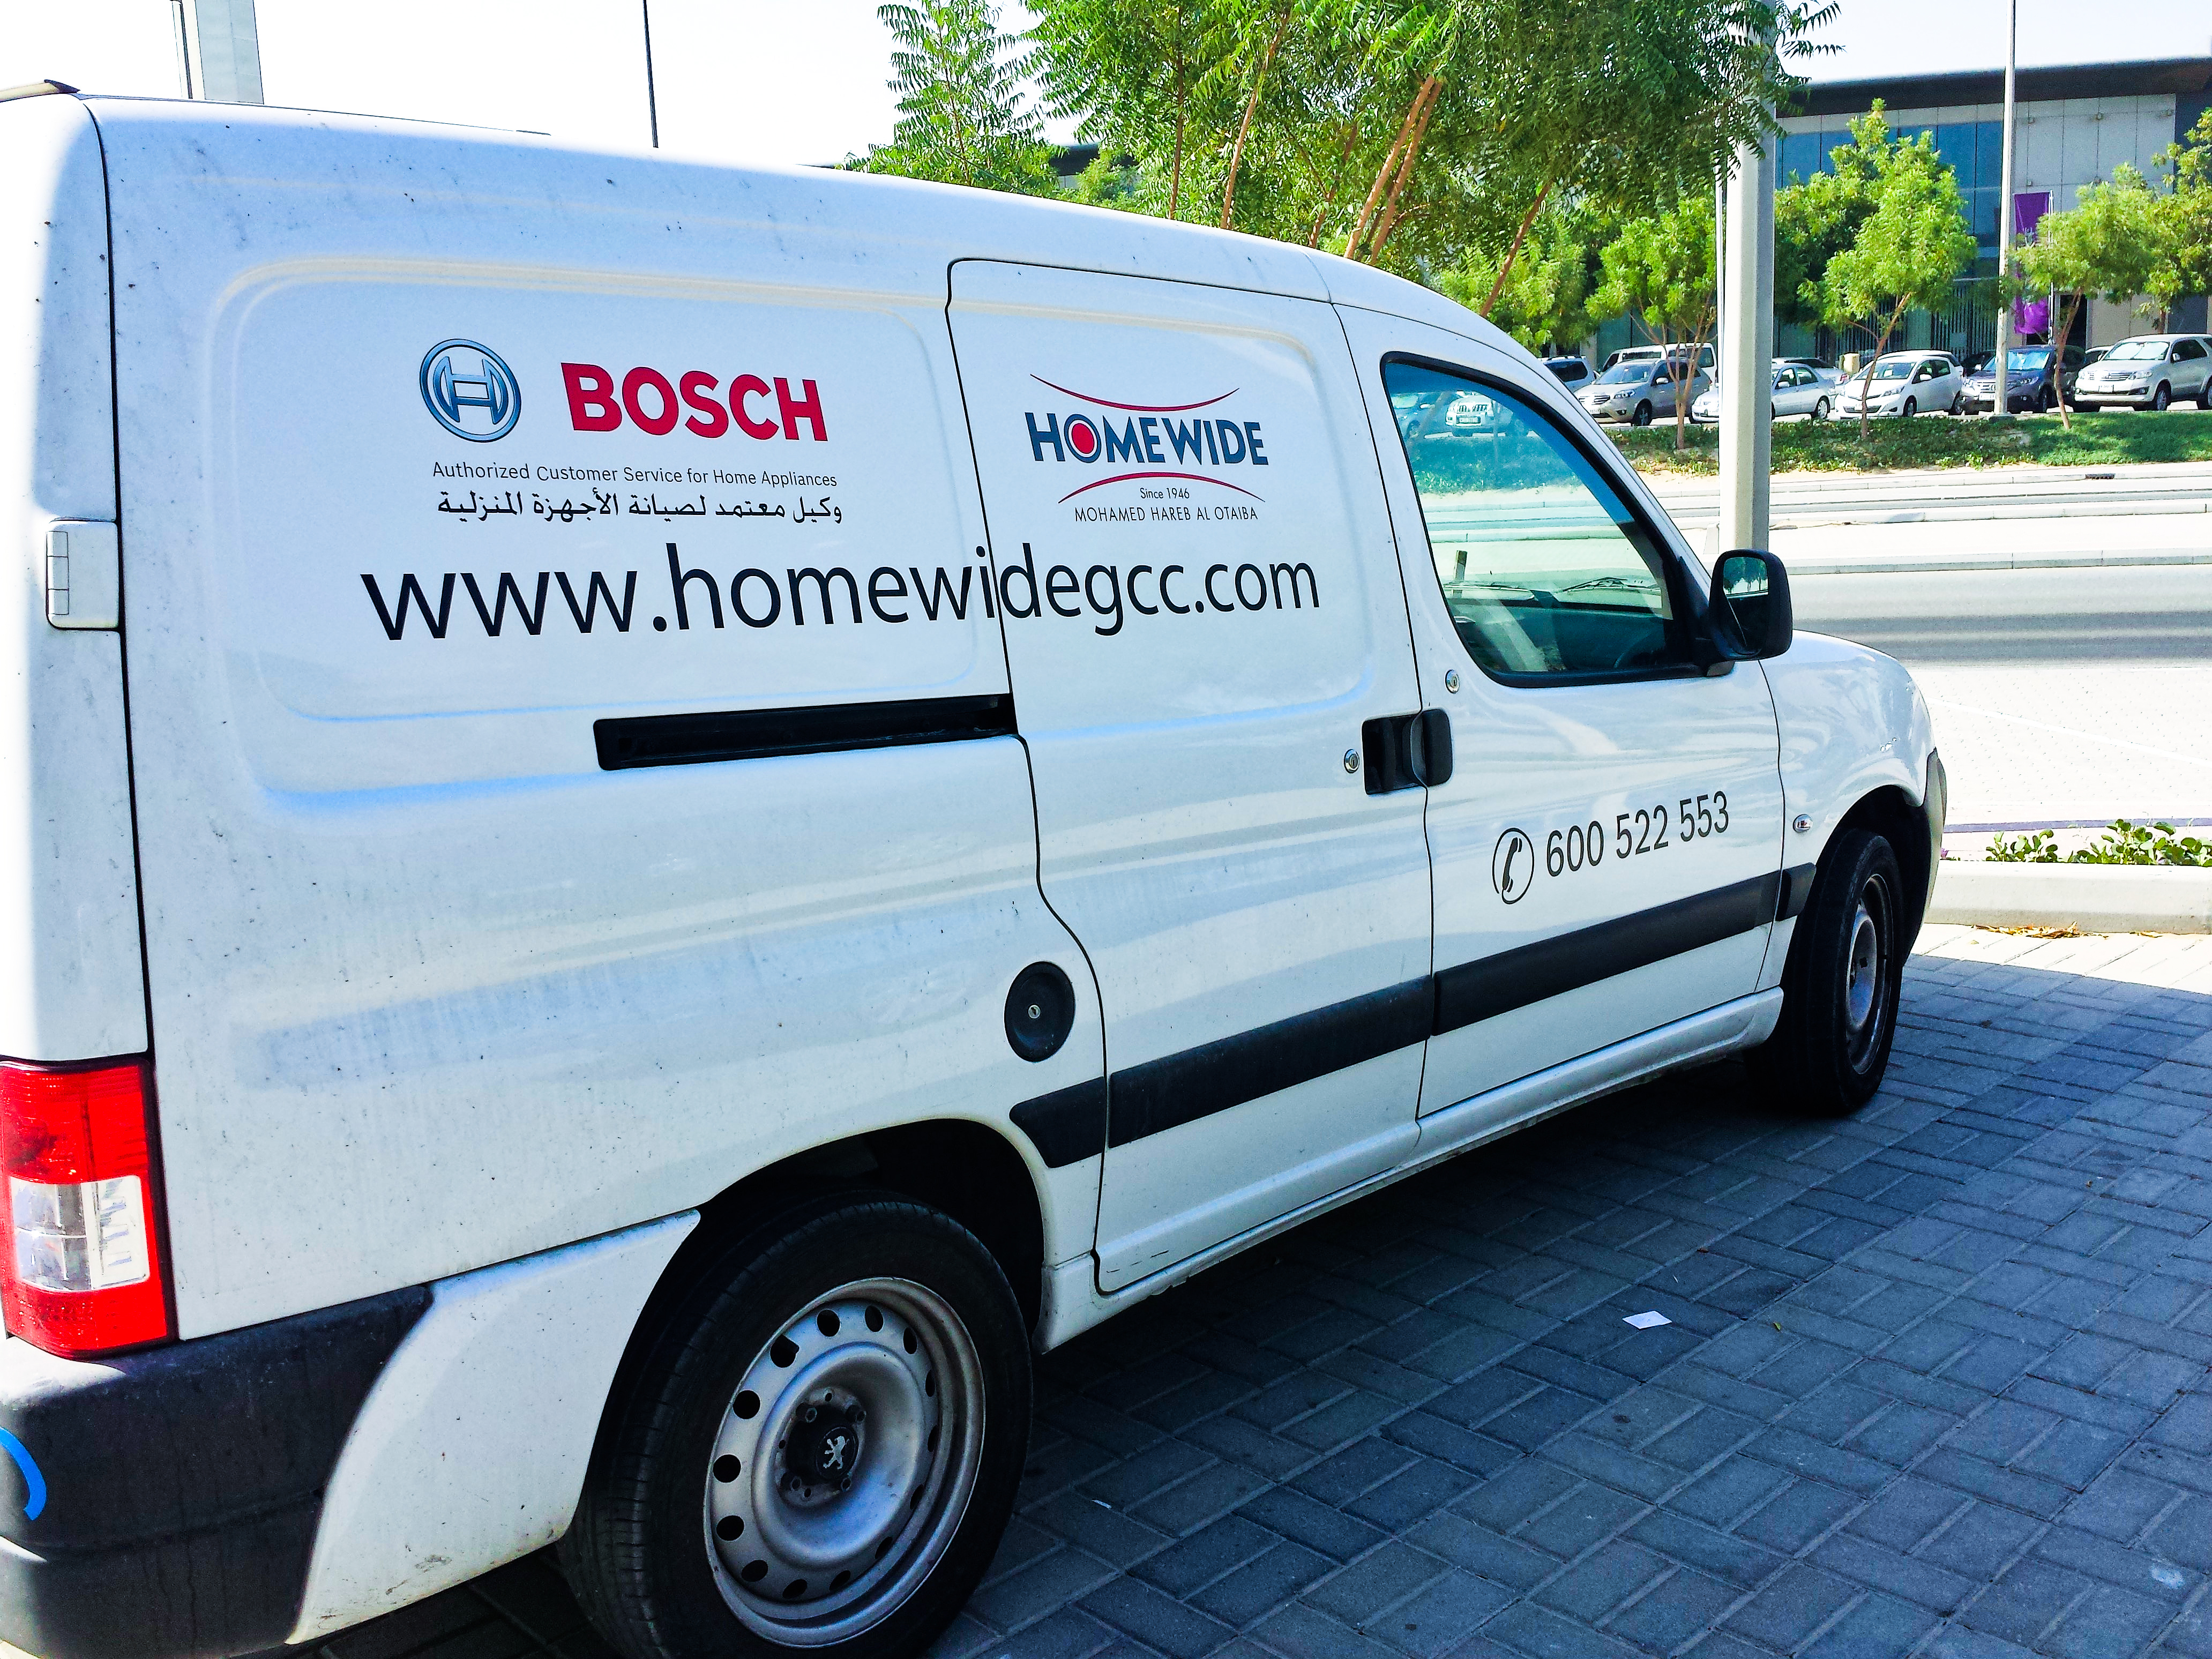 Vehicle Graphics Branding Florida USA Acme Prints Stamps Fleet Advertising Orlando best online